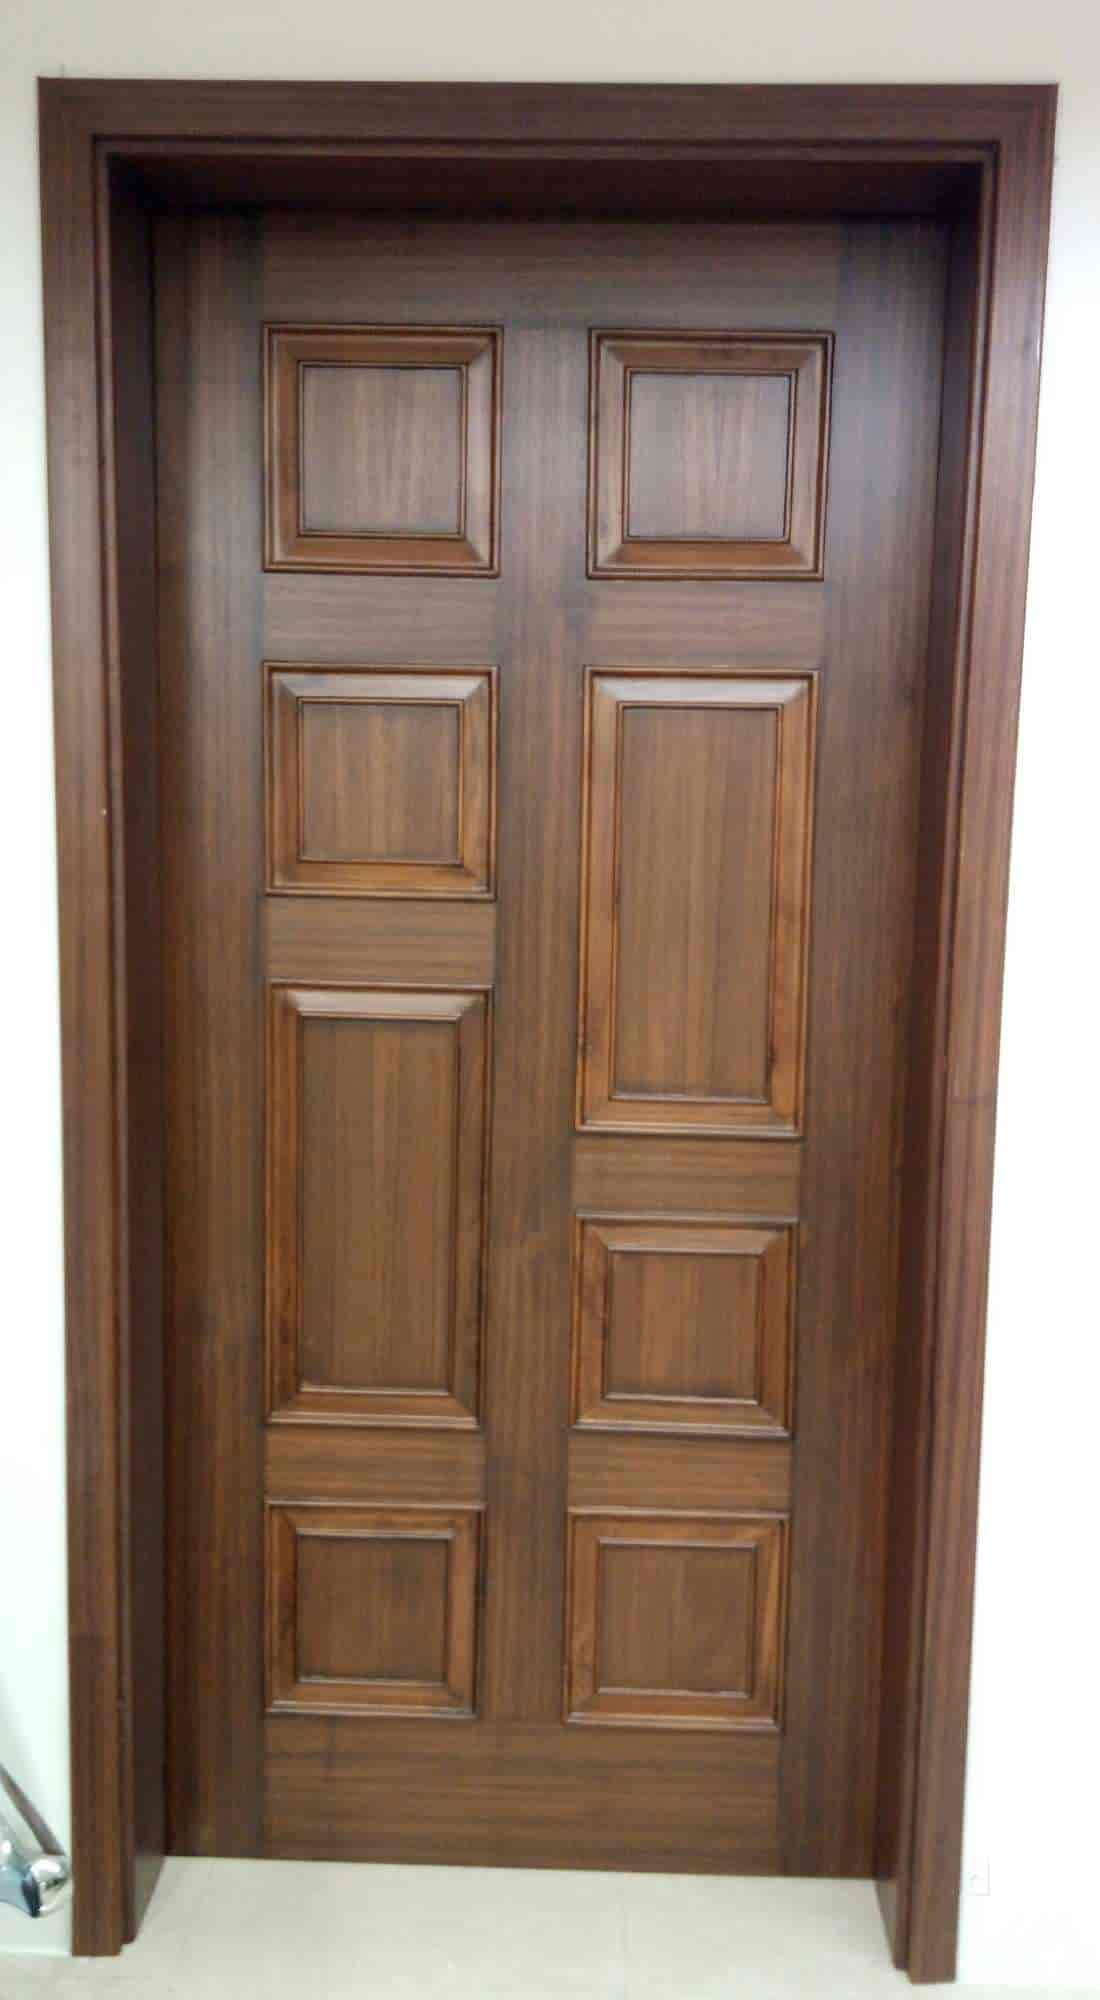 Shree Sakthi Modern Flush Doors, Thirumazhisai - Carpenters